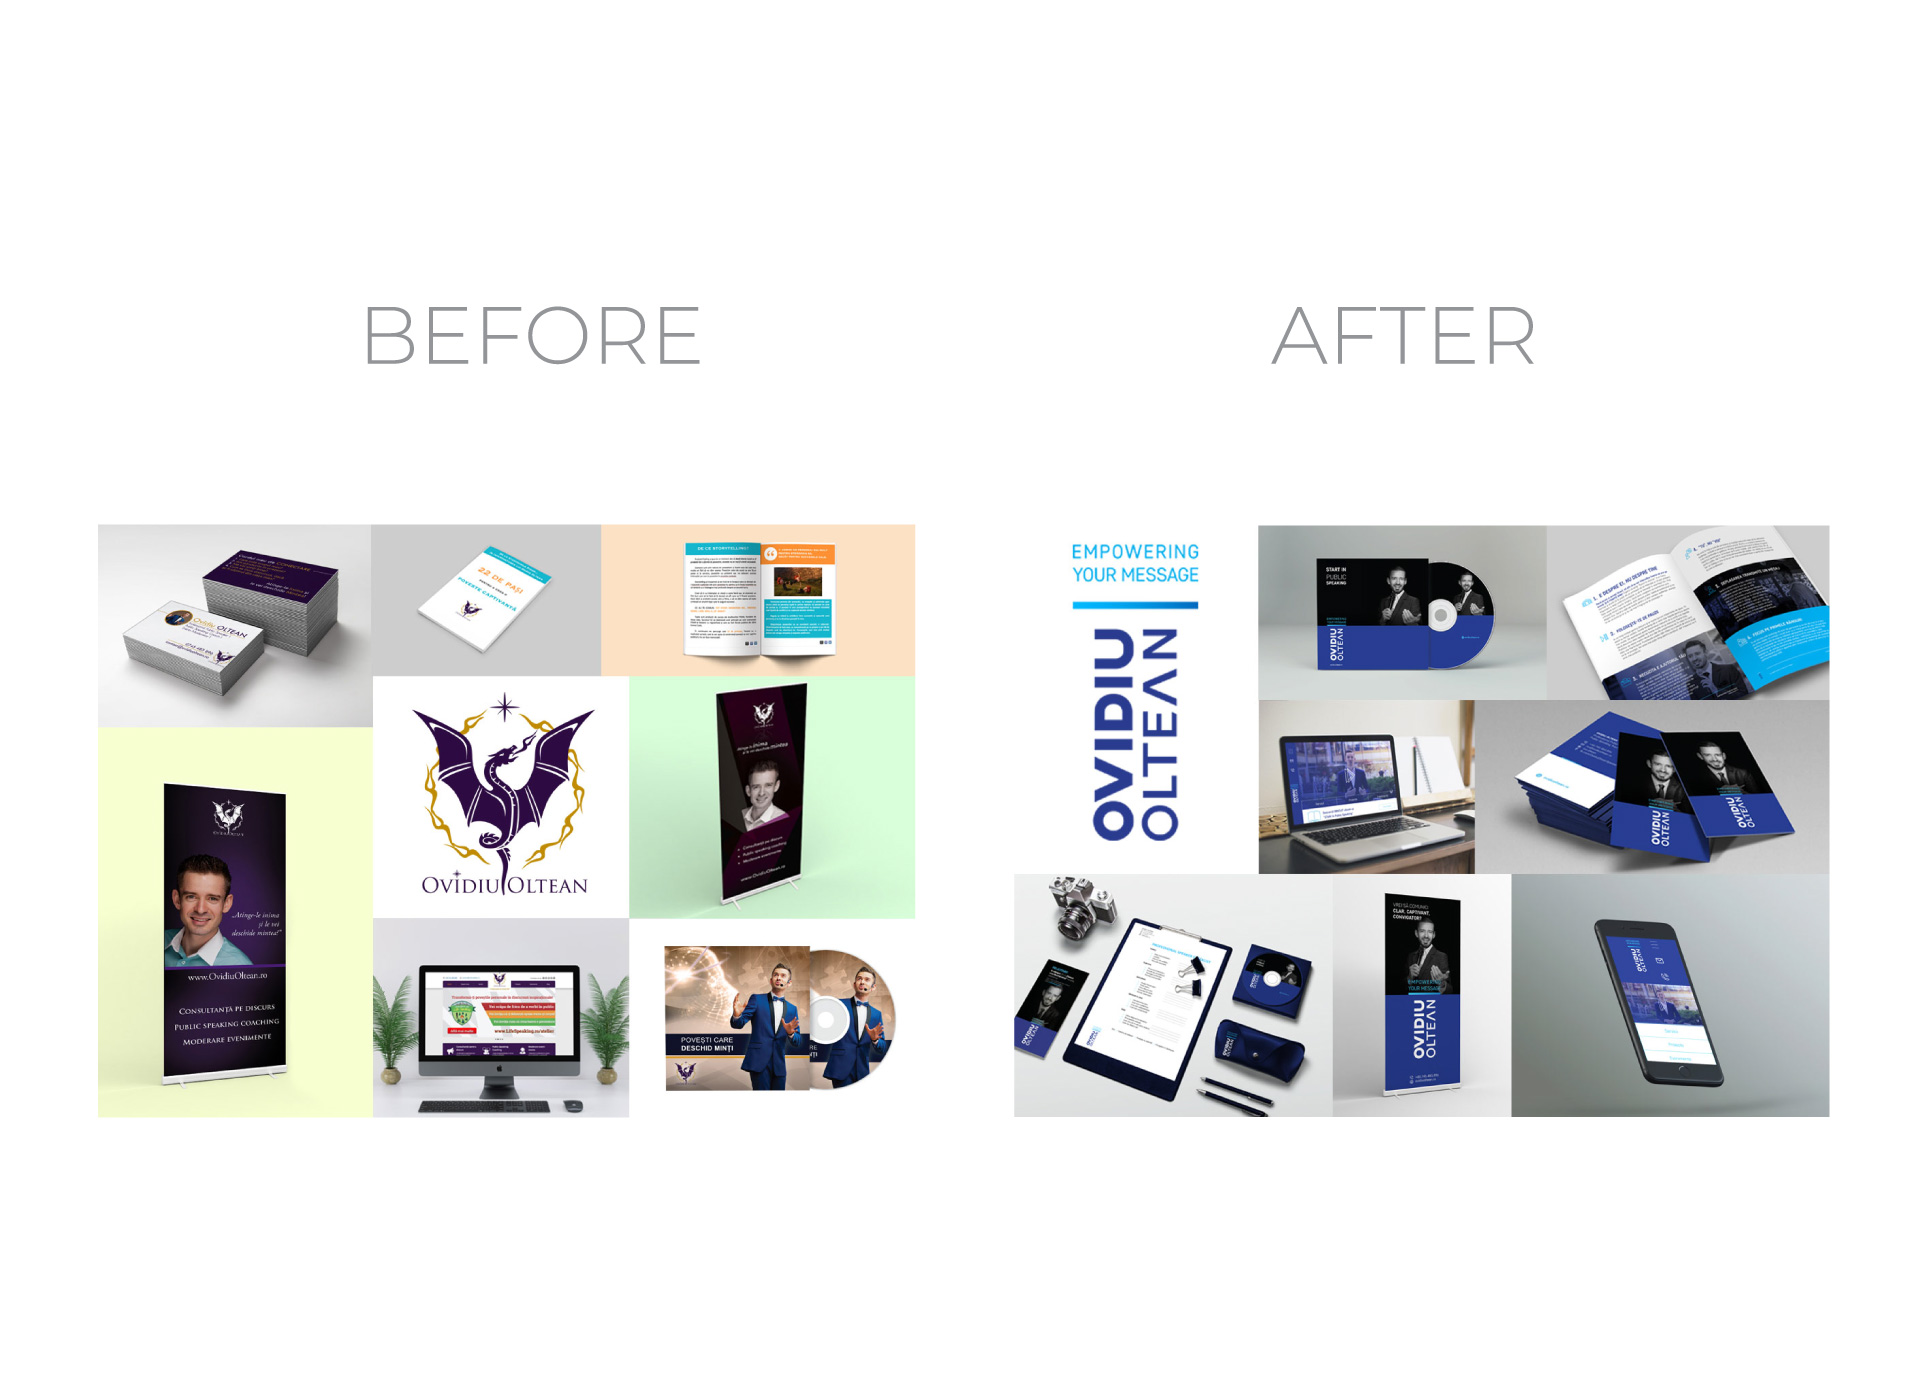 ovidiu oltean portfolio inoveo before and after rebranding